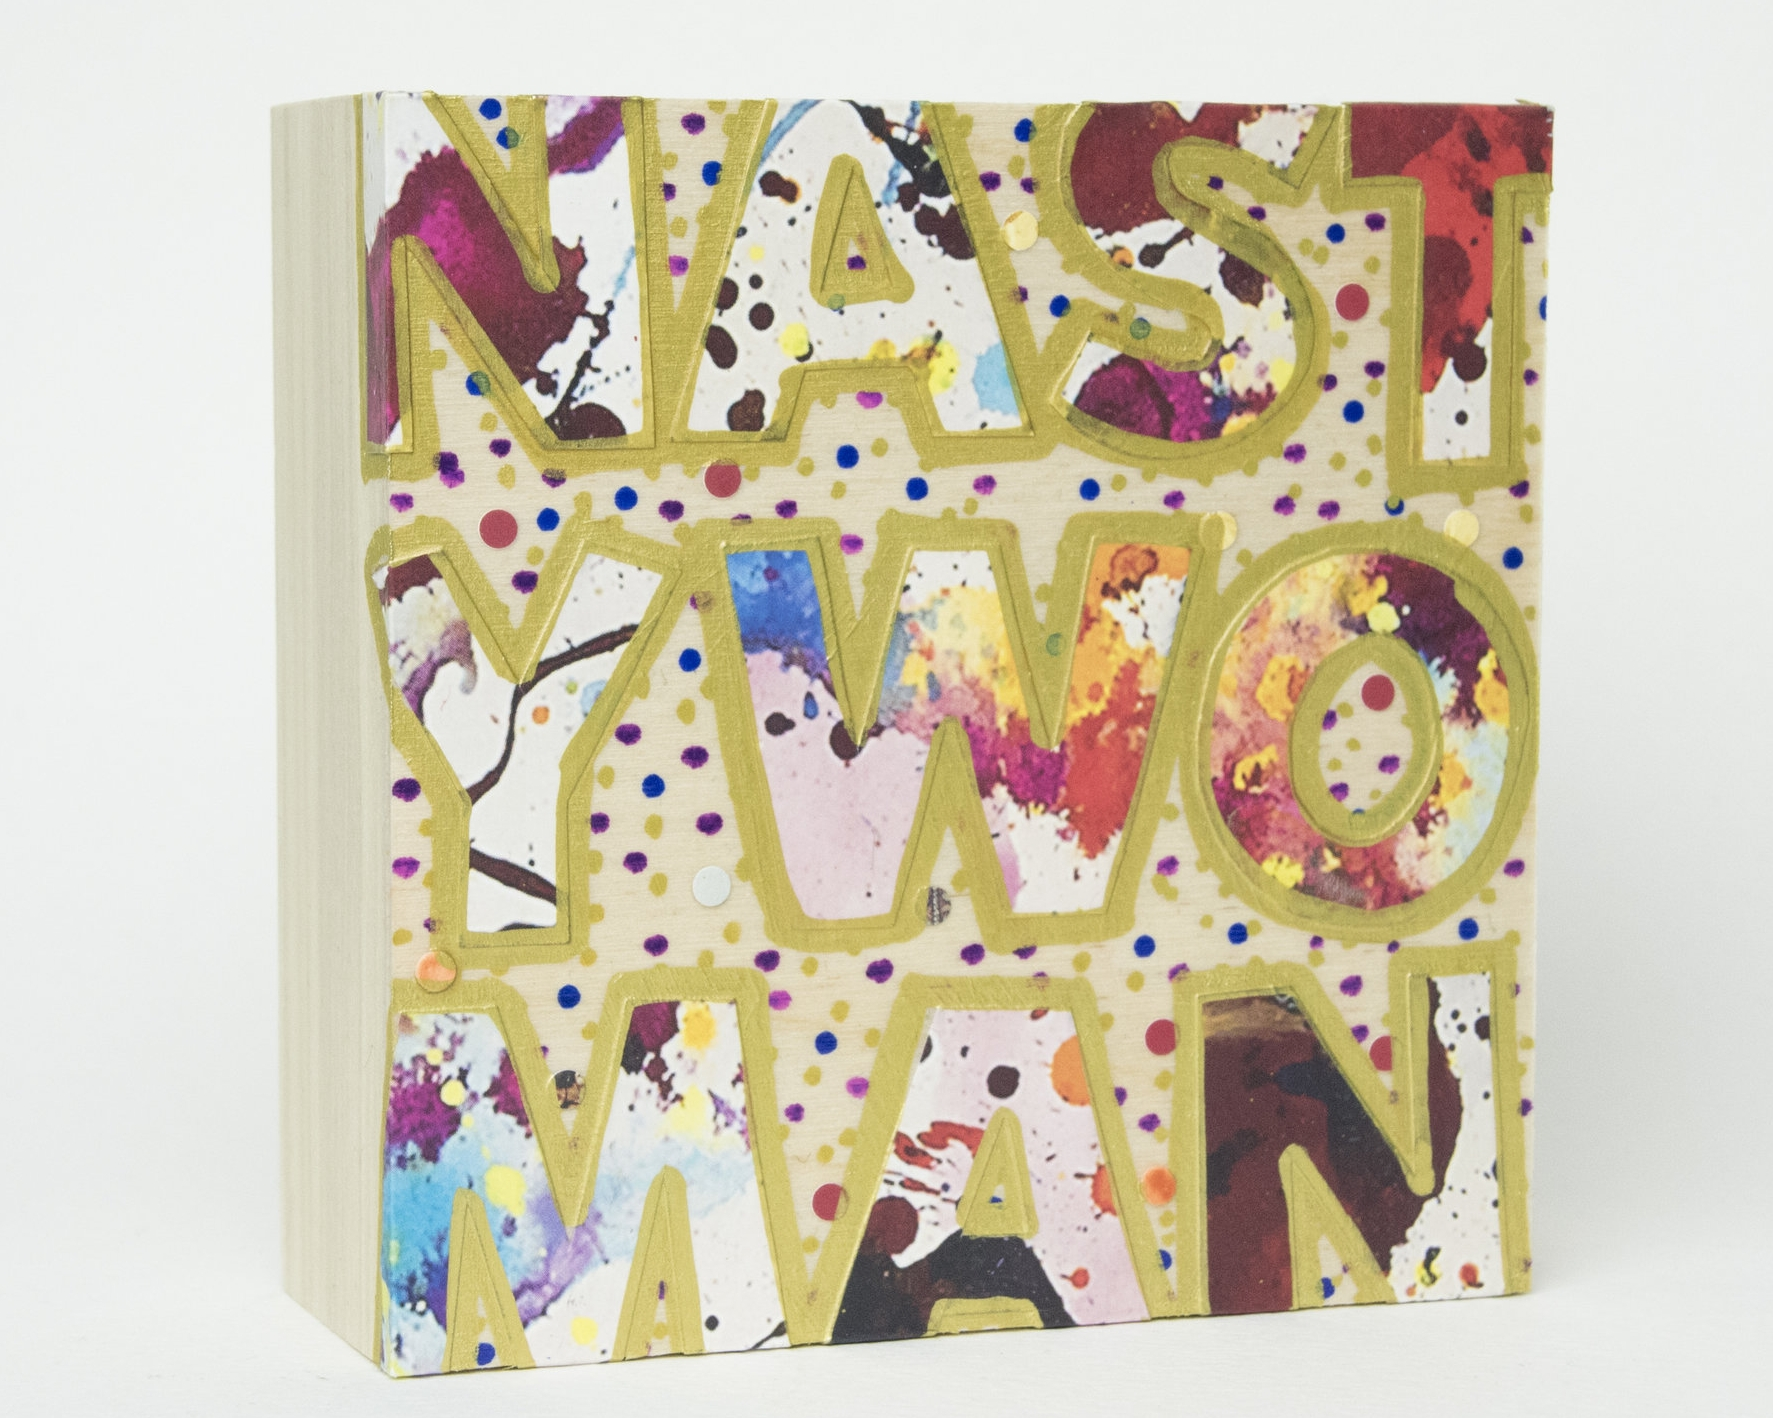 Nasty Woman , 2016 Acrylic, enamel, felt marker and catalog pages on wood 4 x 4 x 1 5/8 inches